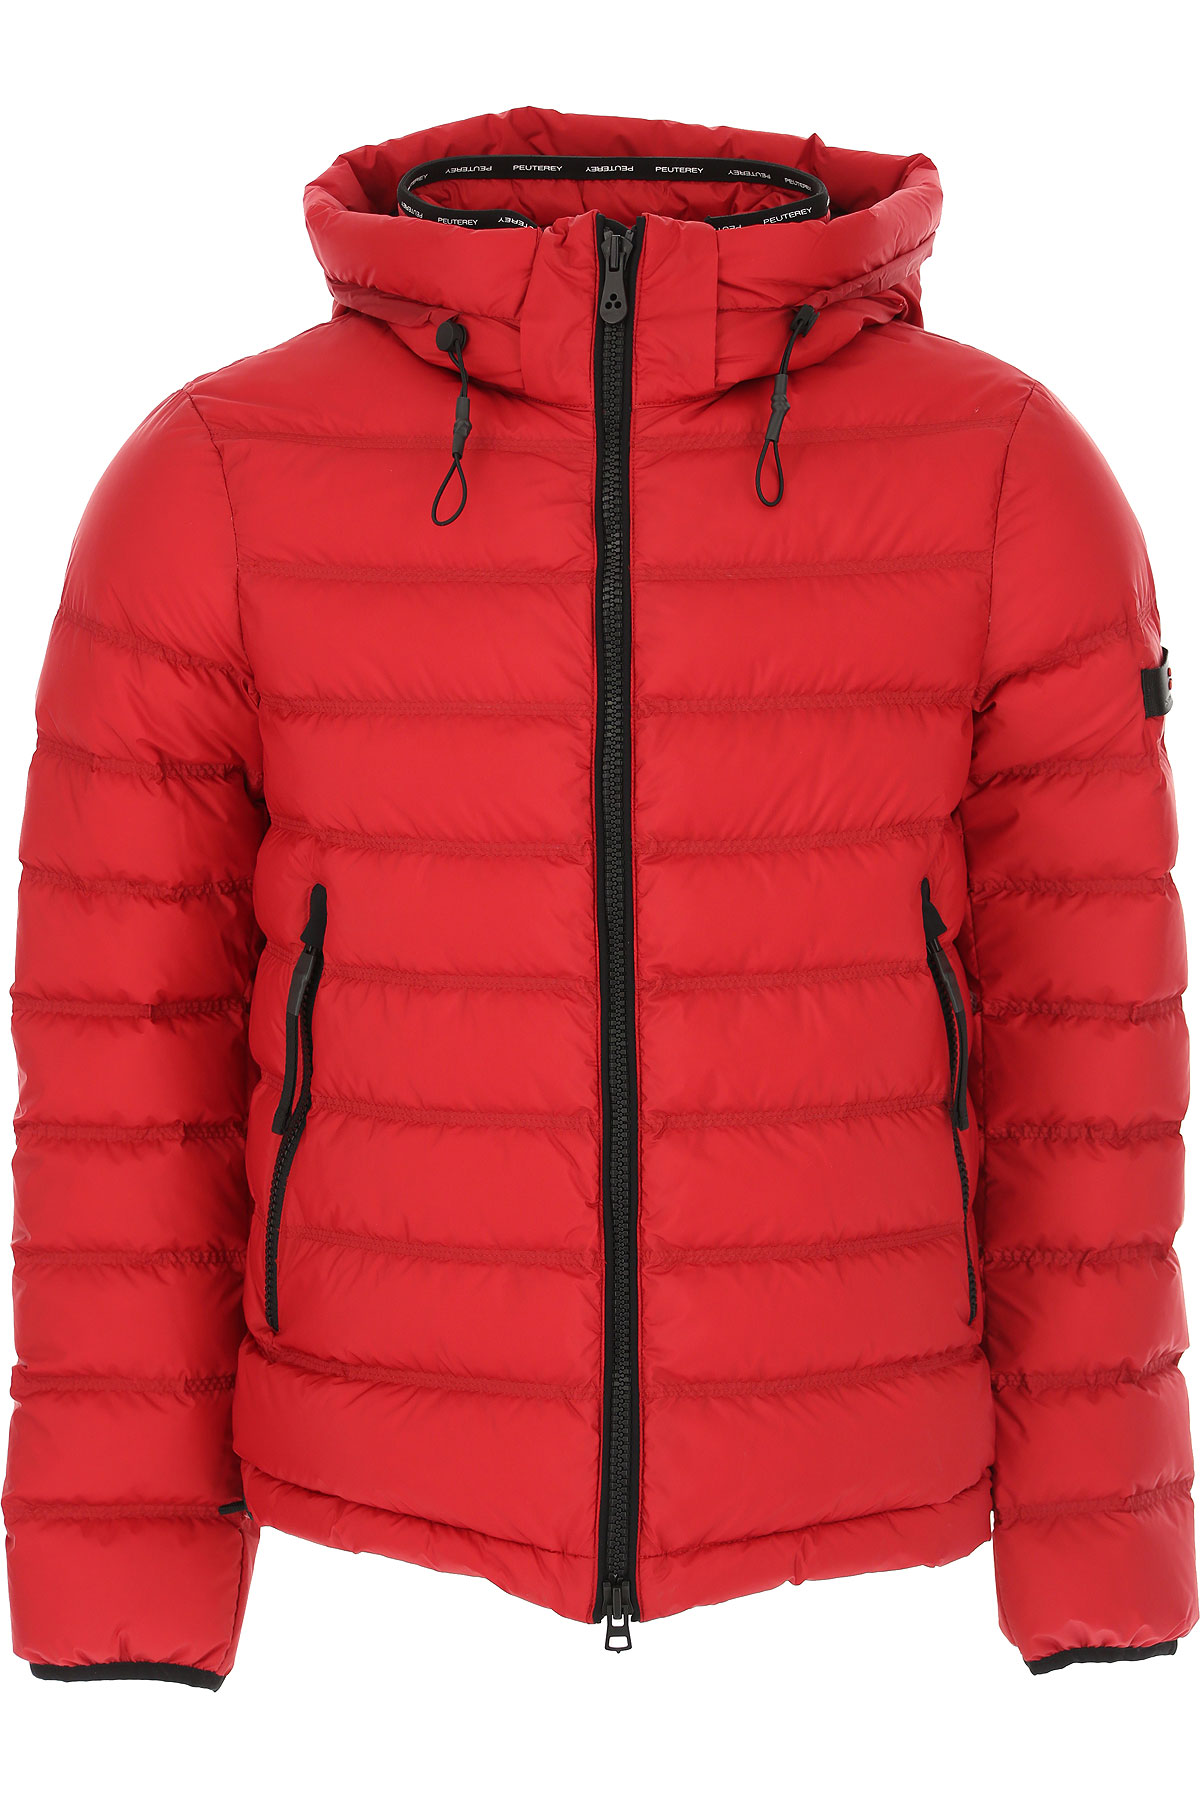 Peuterey Down Jacket for Men, Puffer Ski Jacket On Sale, Flame Red, polyester, 2019, L S